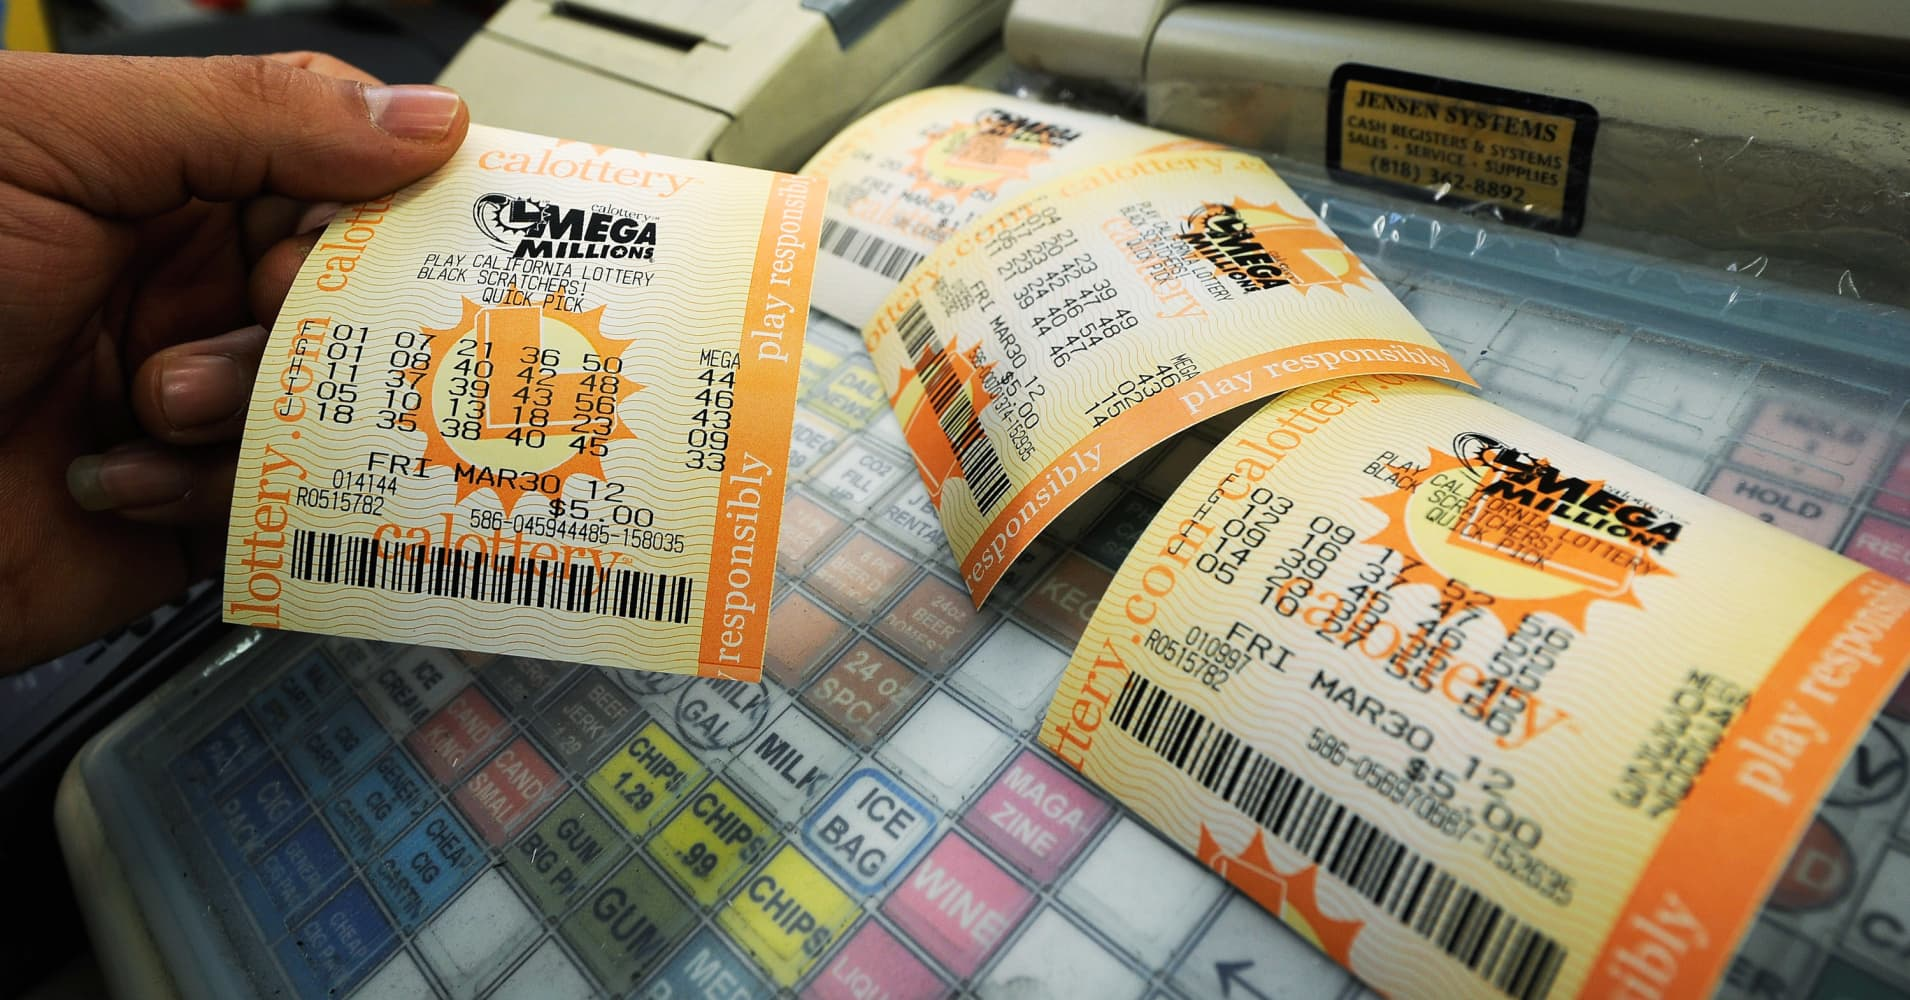 Here's the tax bill on that $450 million Mega Millions win